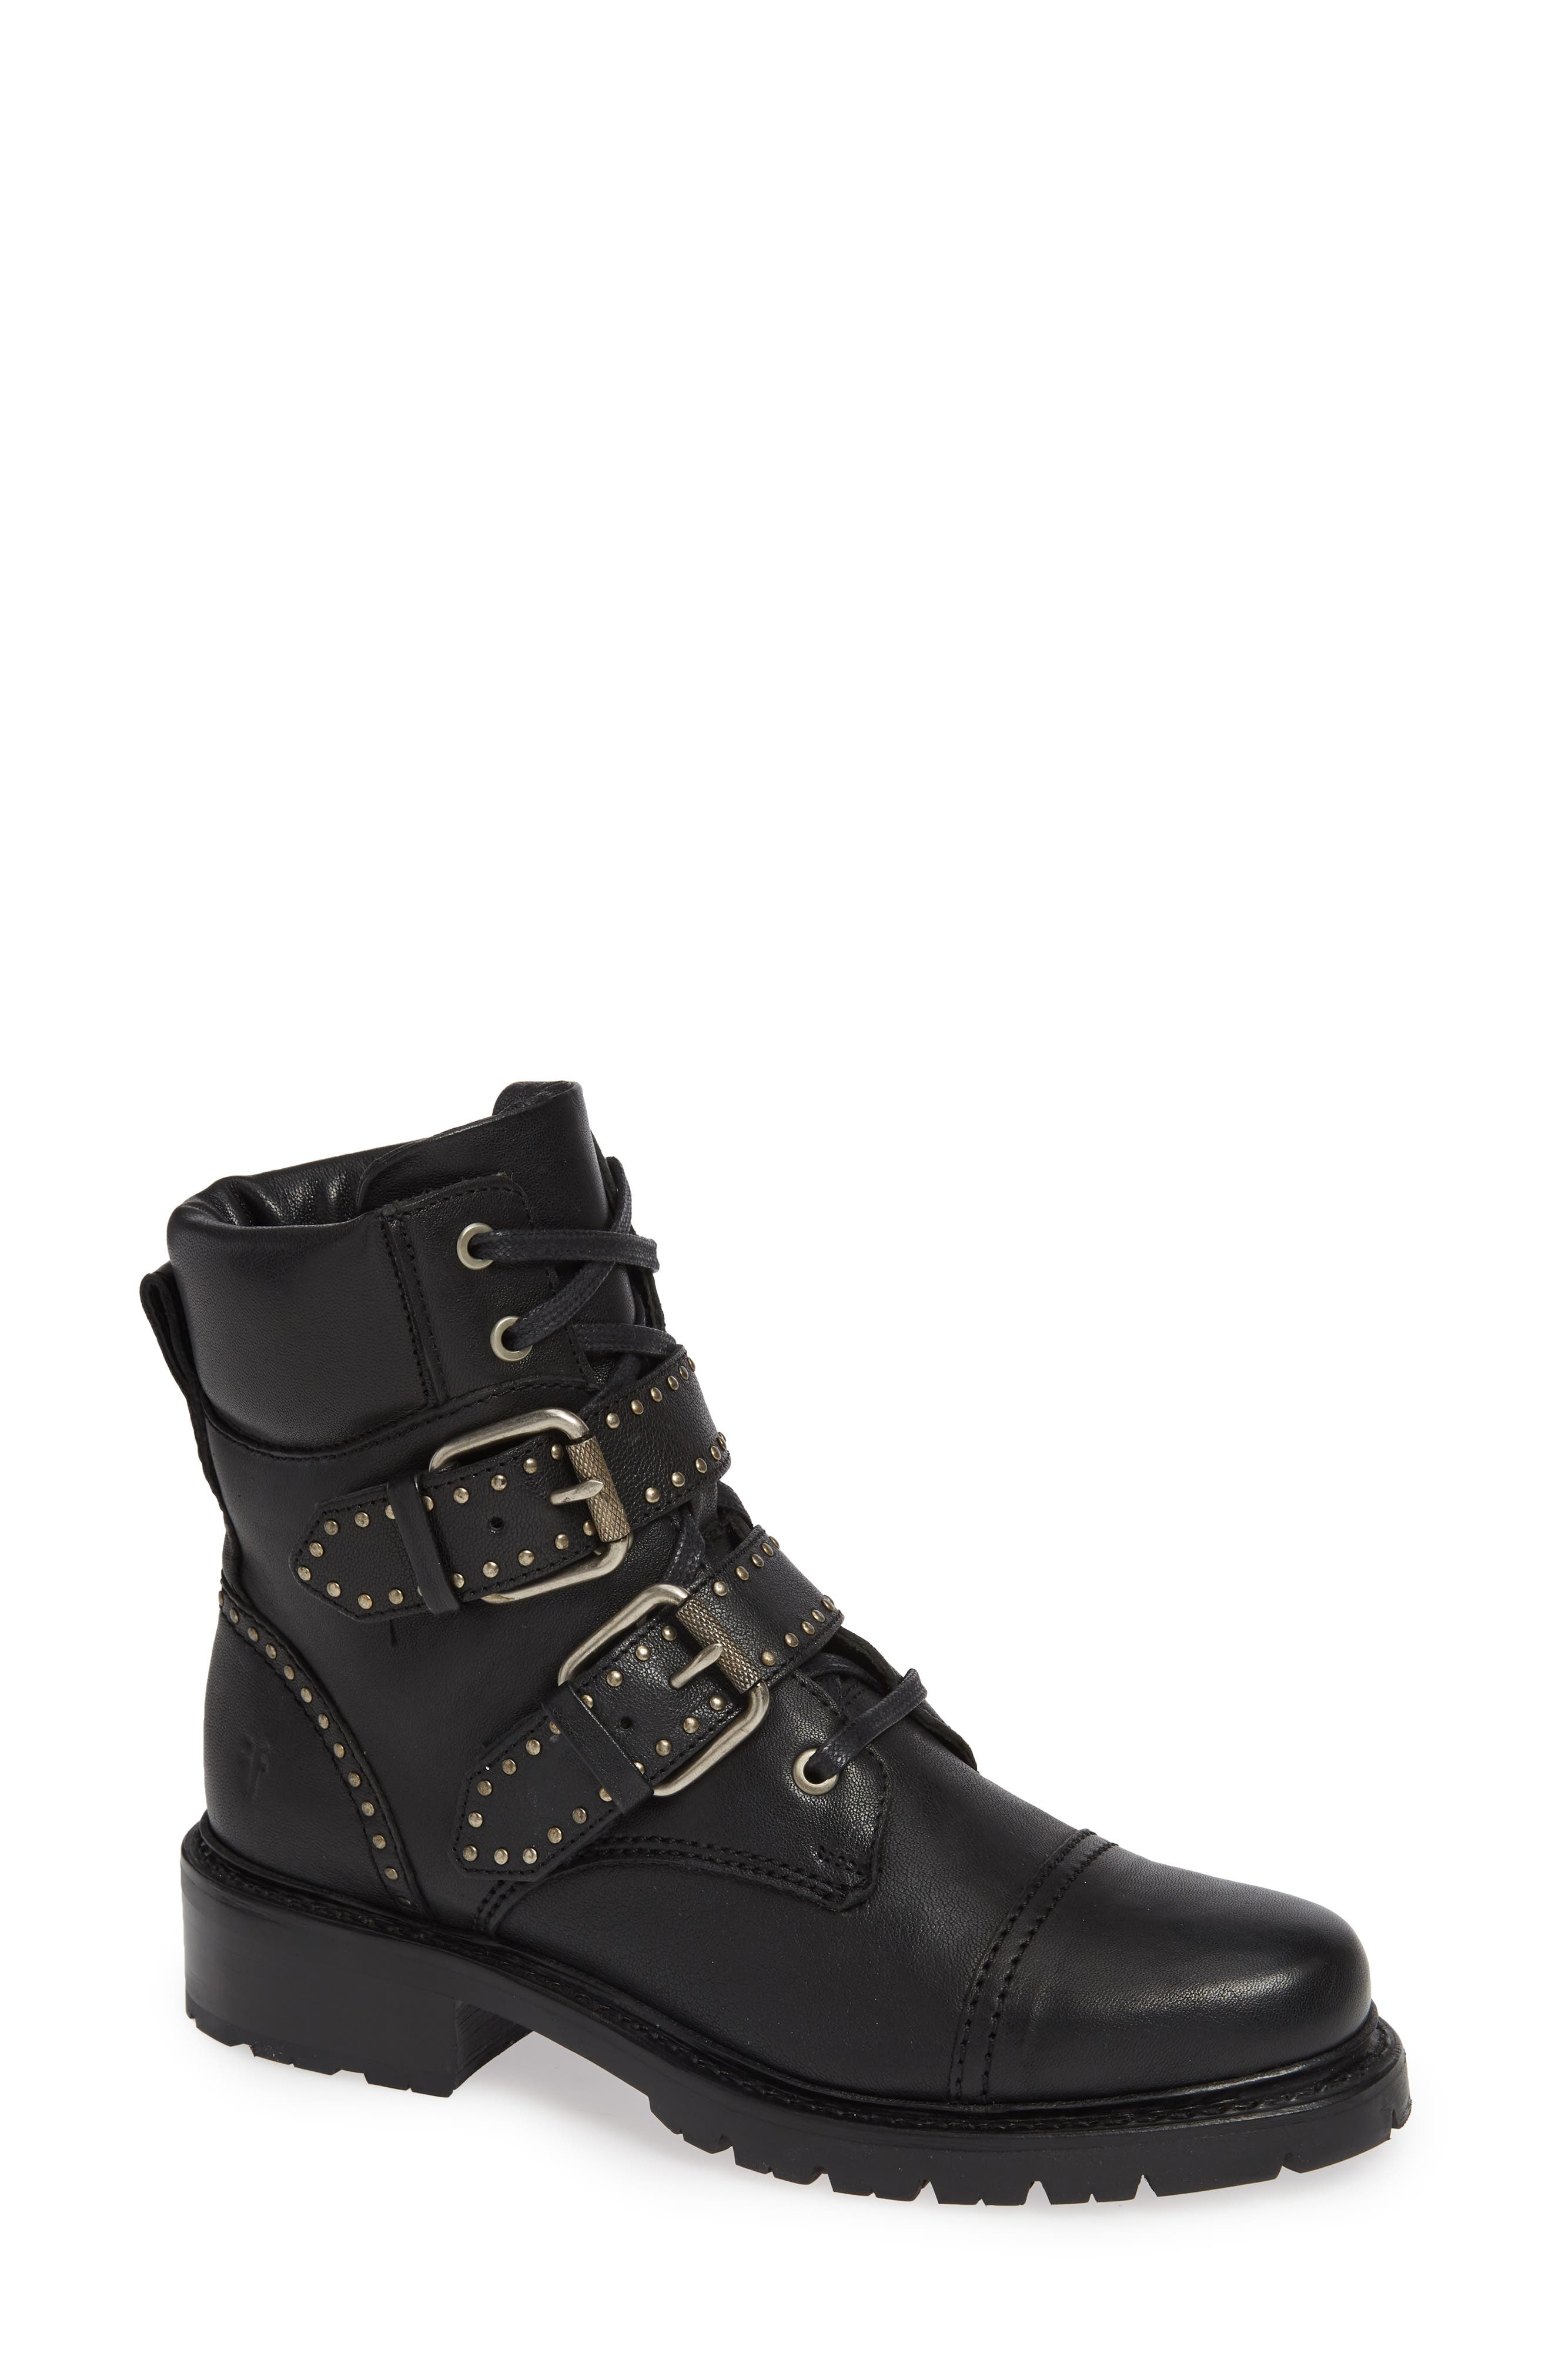 FRYE, Samantha Stud Buckle Boots, Main thumbnail 1, color, BLACK LEATHER